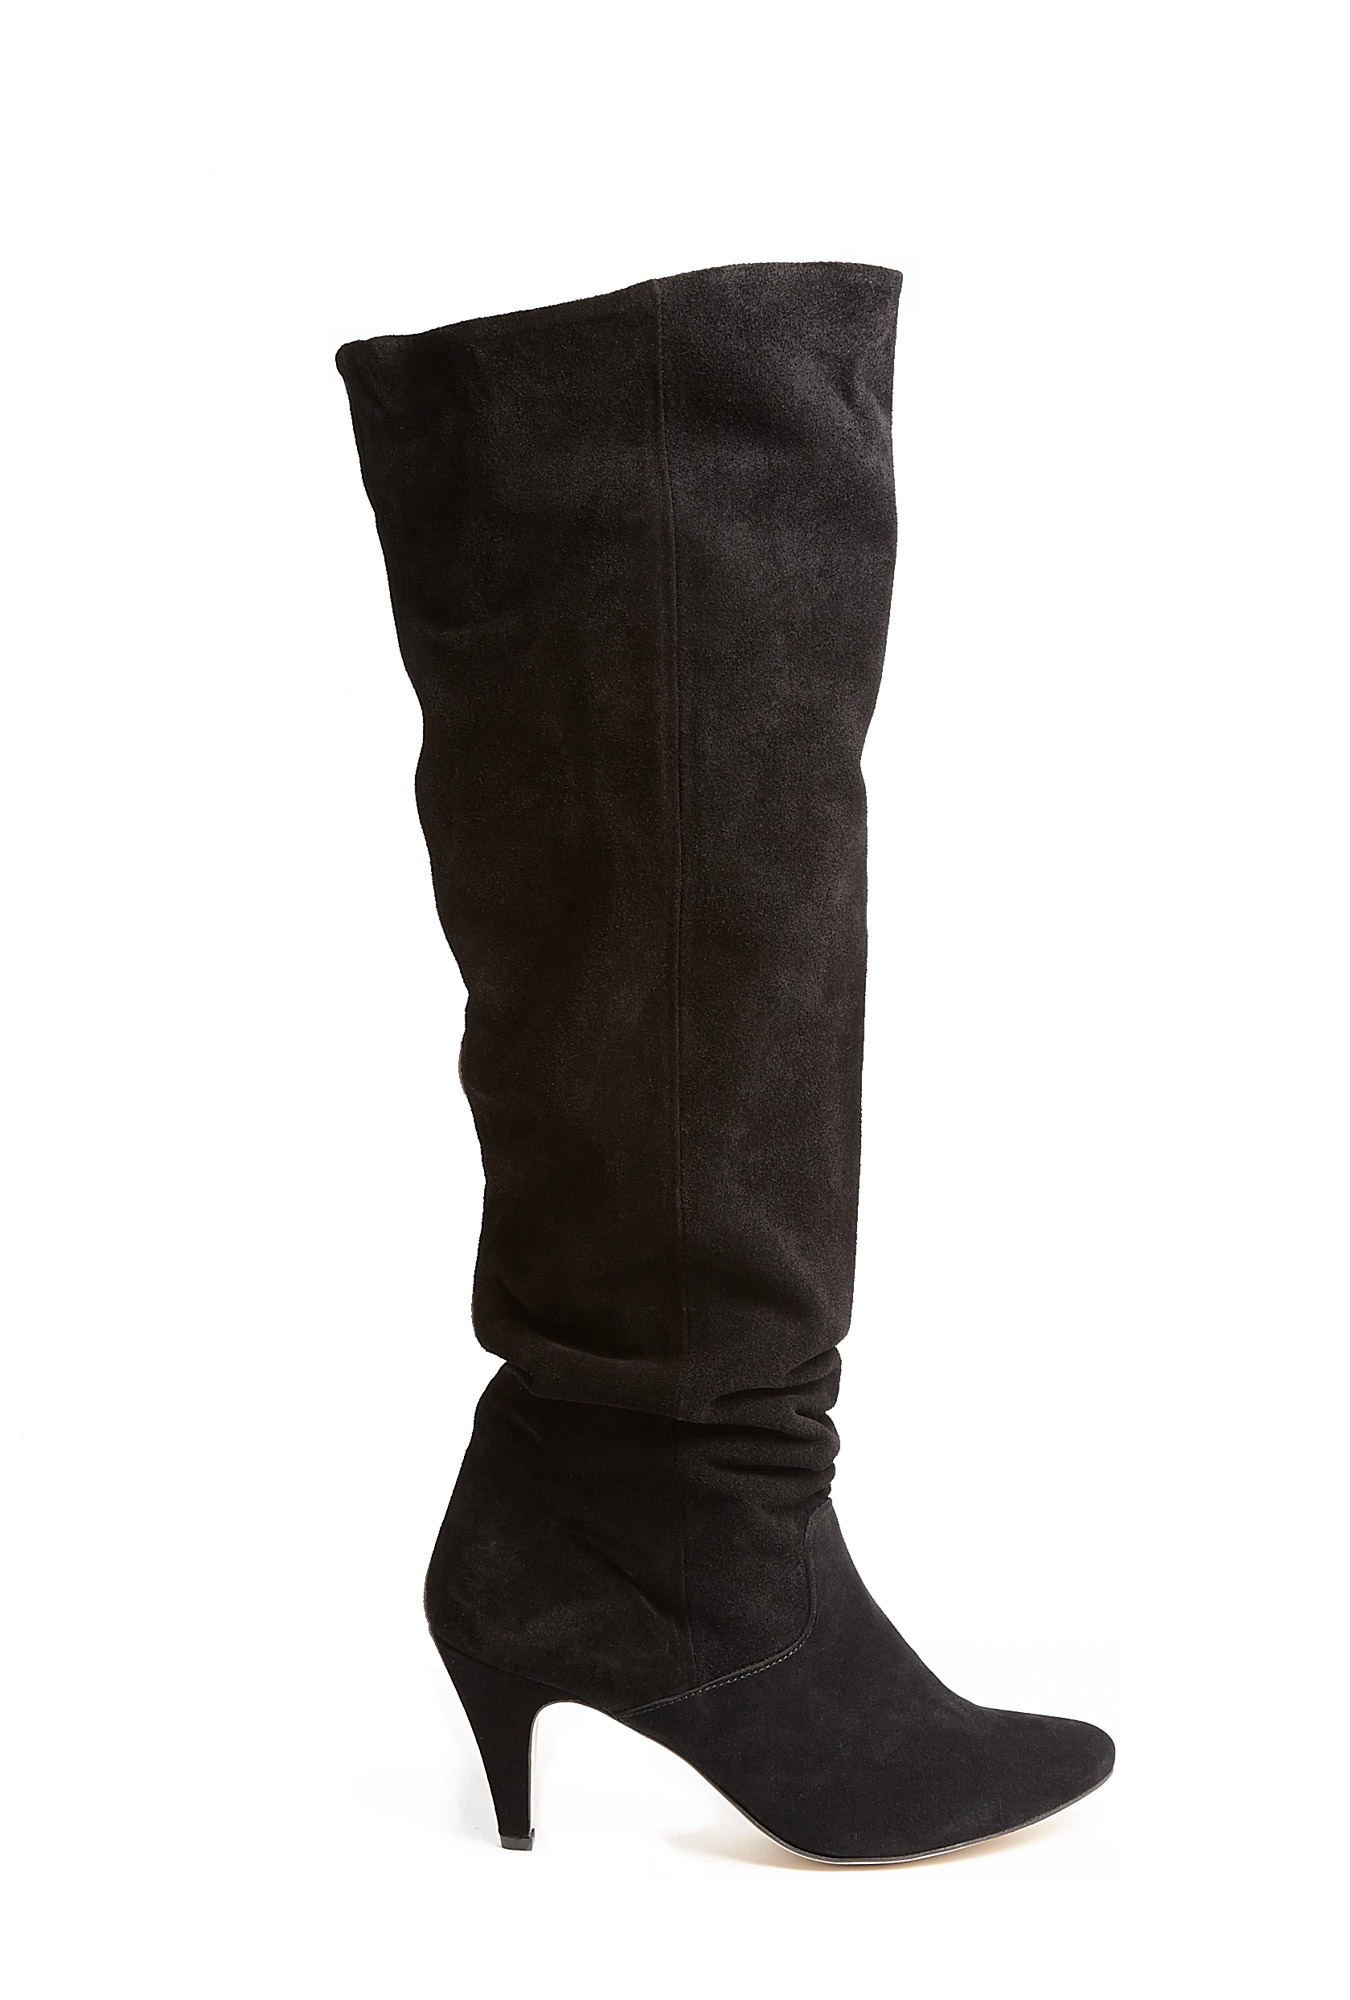 Ganni | Over The Knee Suede Boot by Ganni